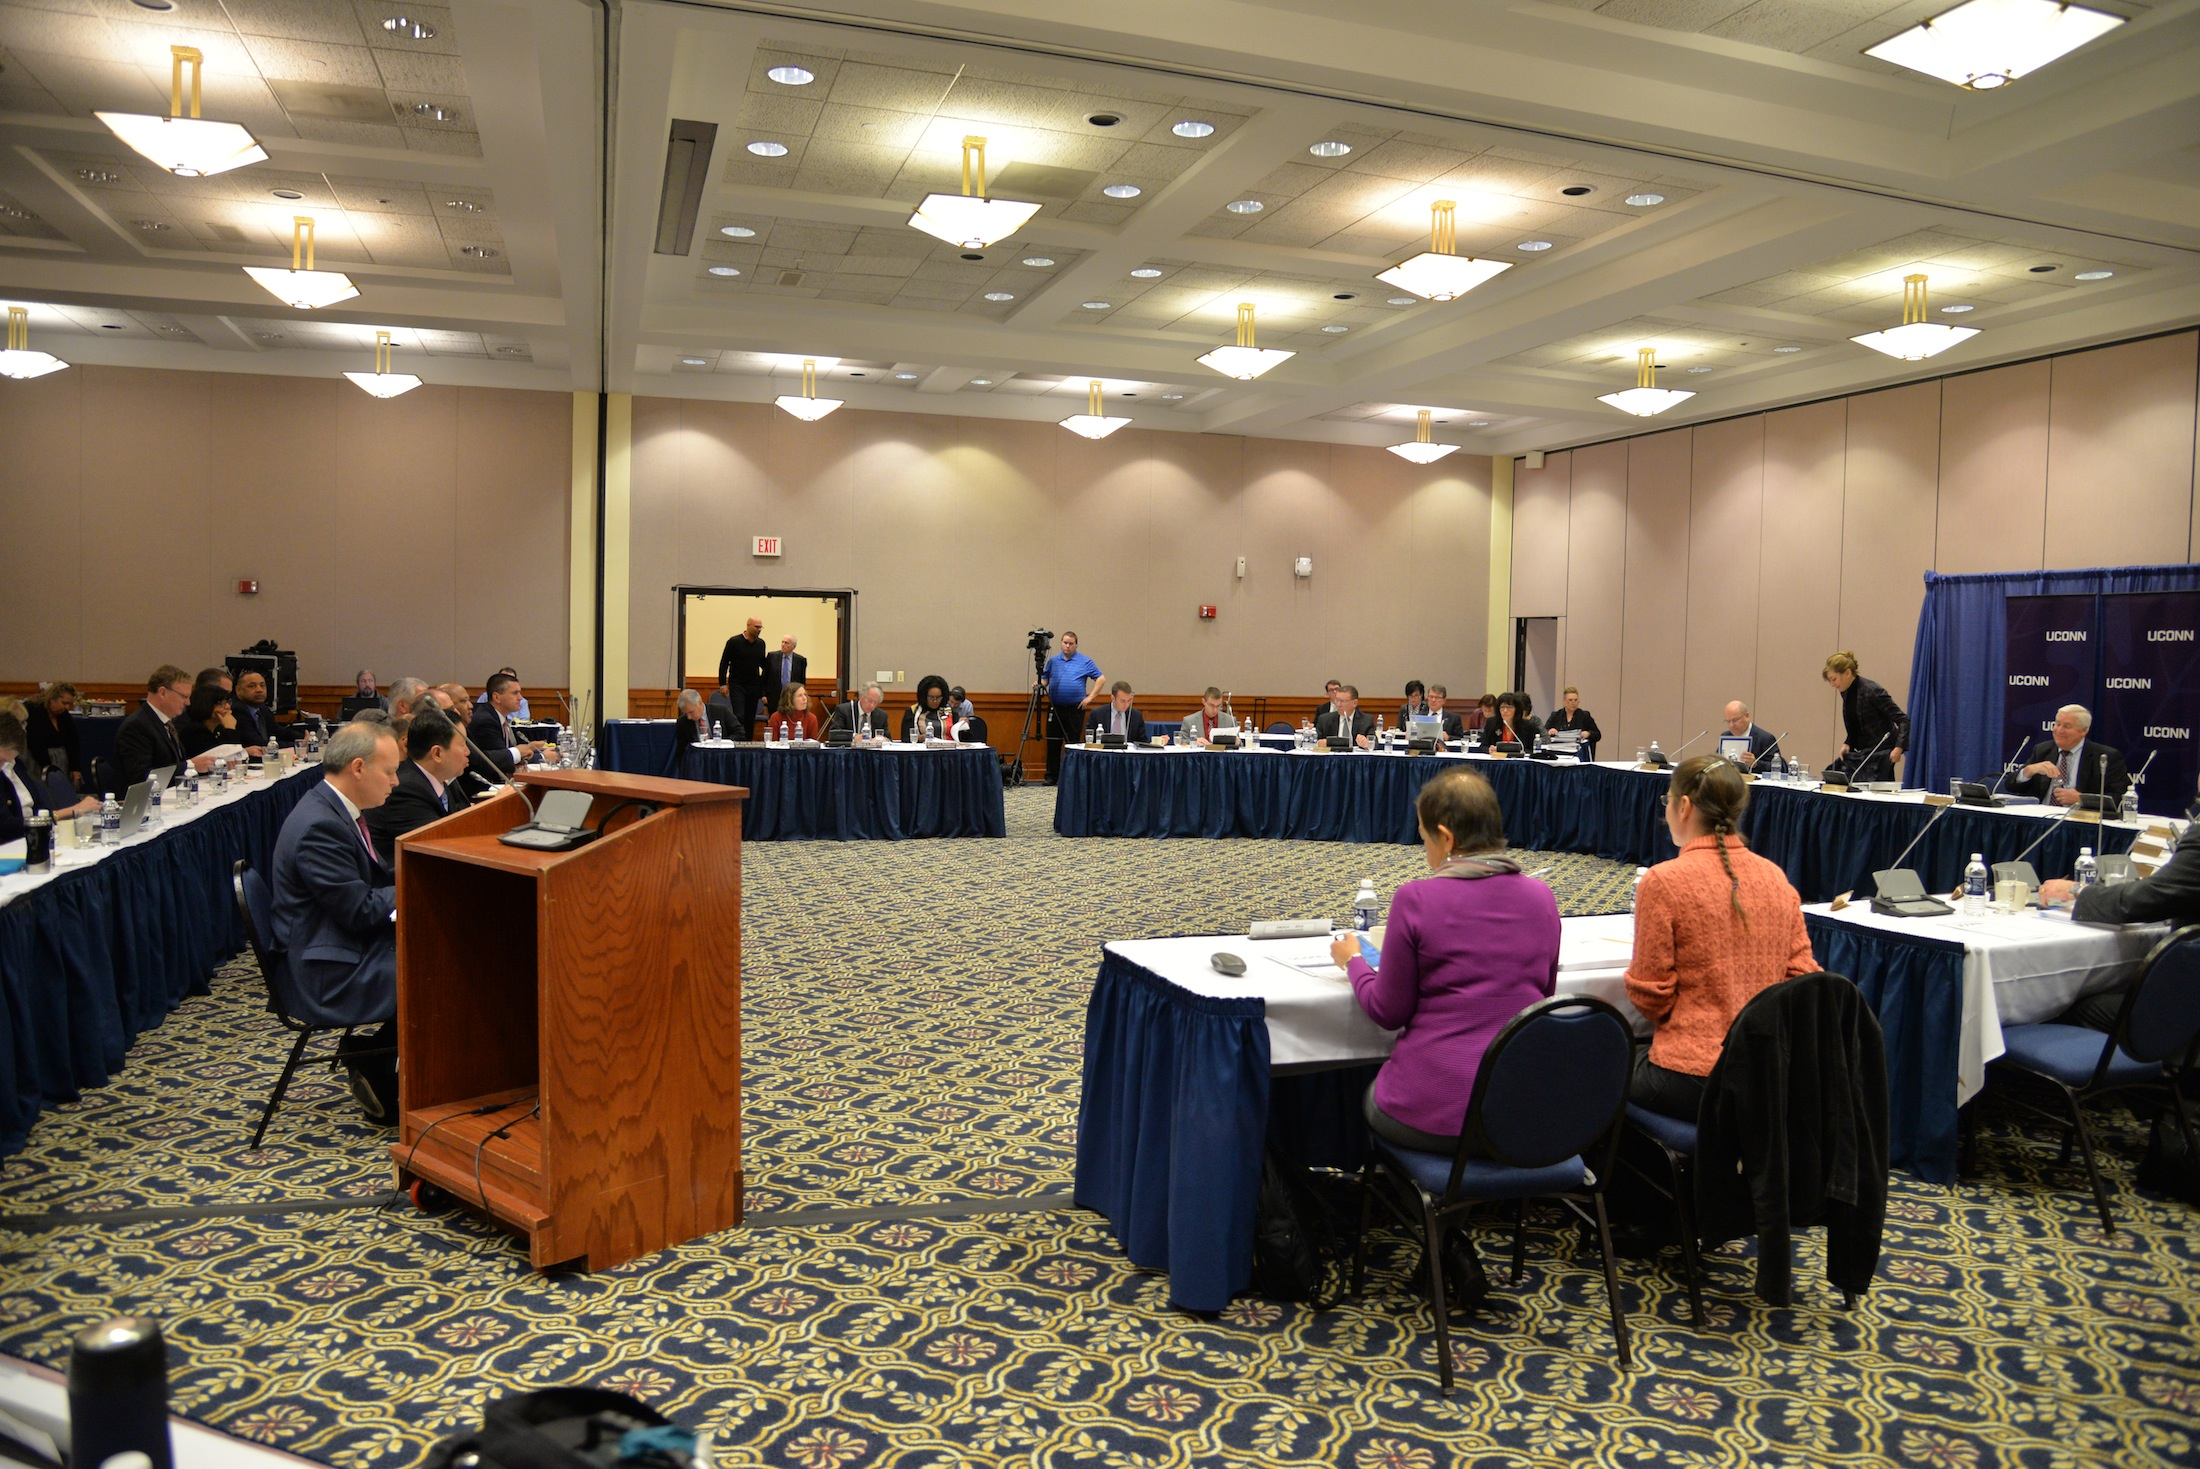 The Board of Trustees discusses current affairs of the university during their monthly meeting on Dec. 7, 2016 in Rome Ballroom. In their most recent meeting the board voted to raise tuition. (Amar Batra/The Daily Campus)